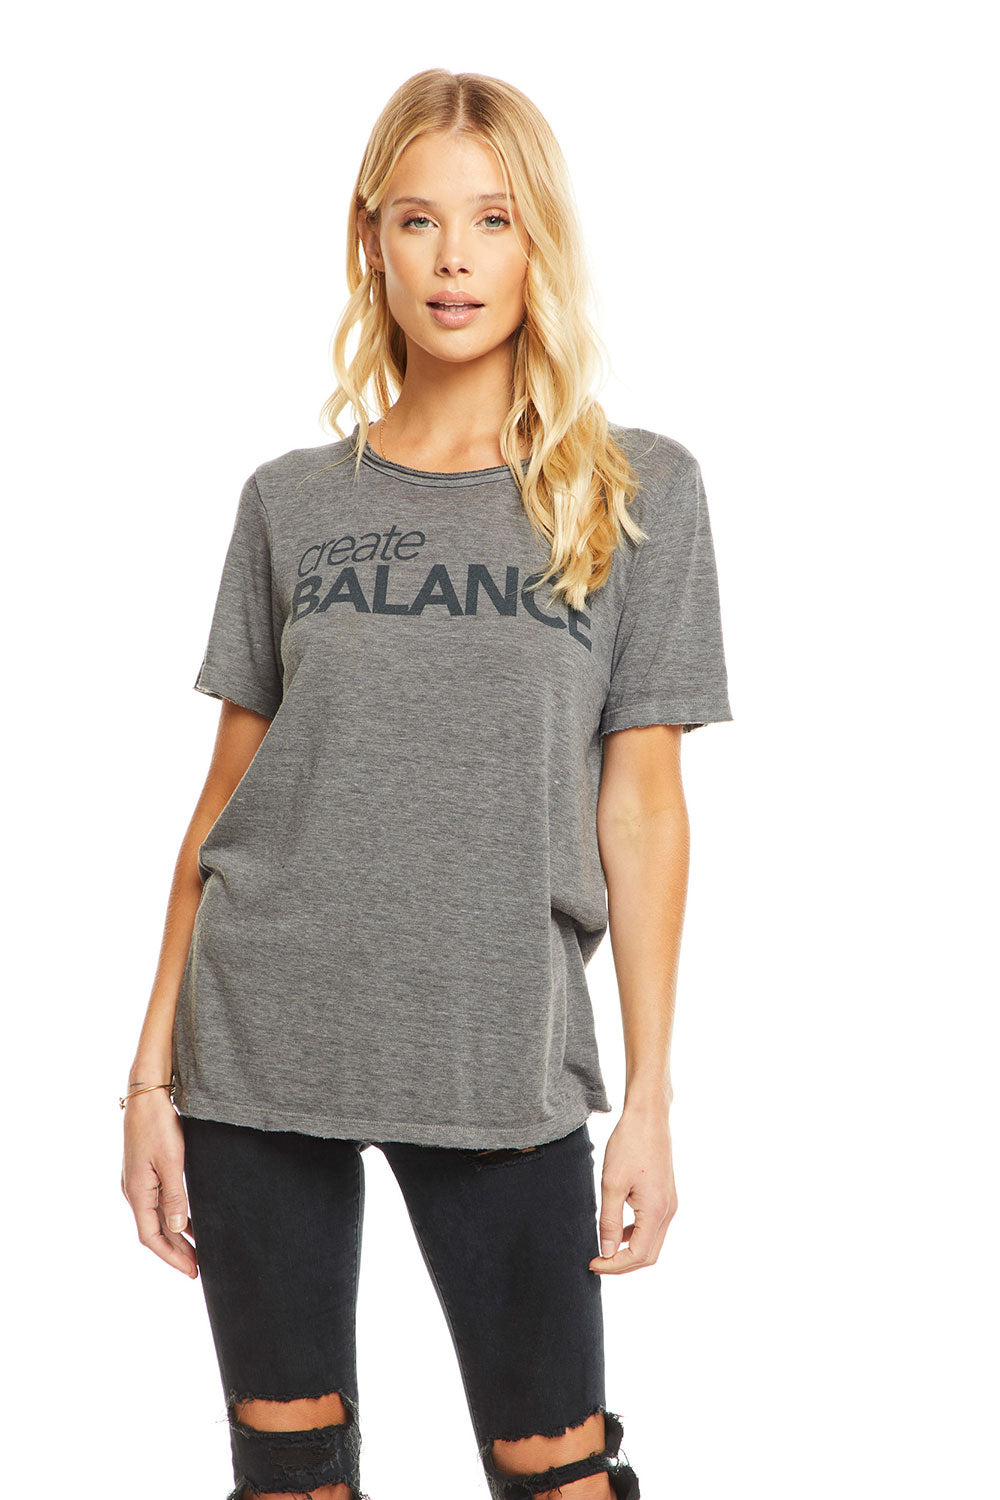 Create Balance, WOMENS, chaserbrand.com,chaser clothing,chaser apparel,chaser los angeles